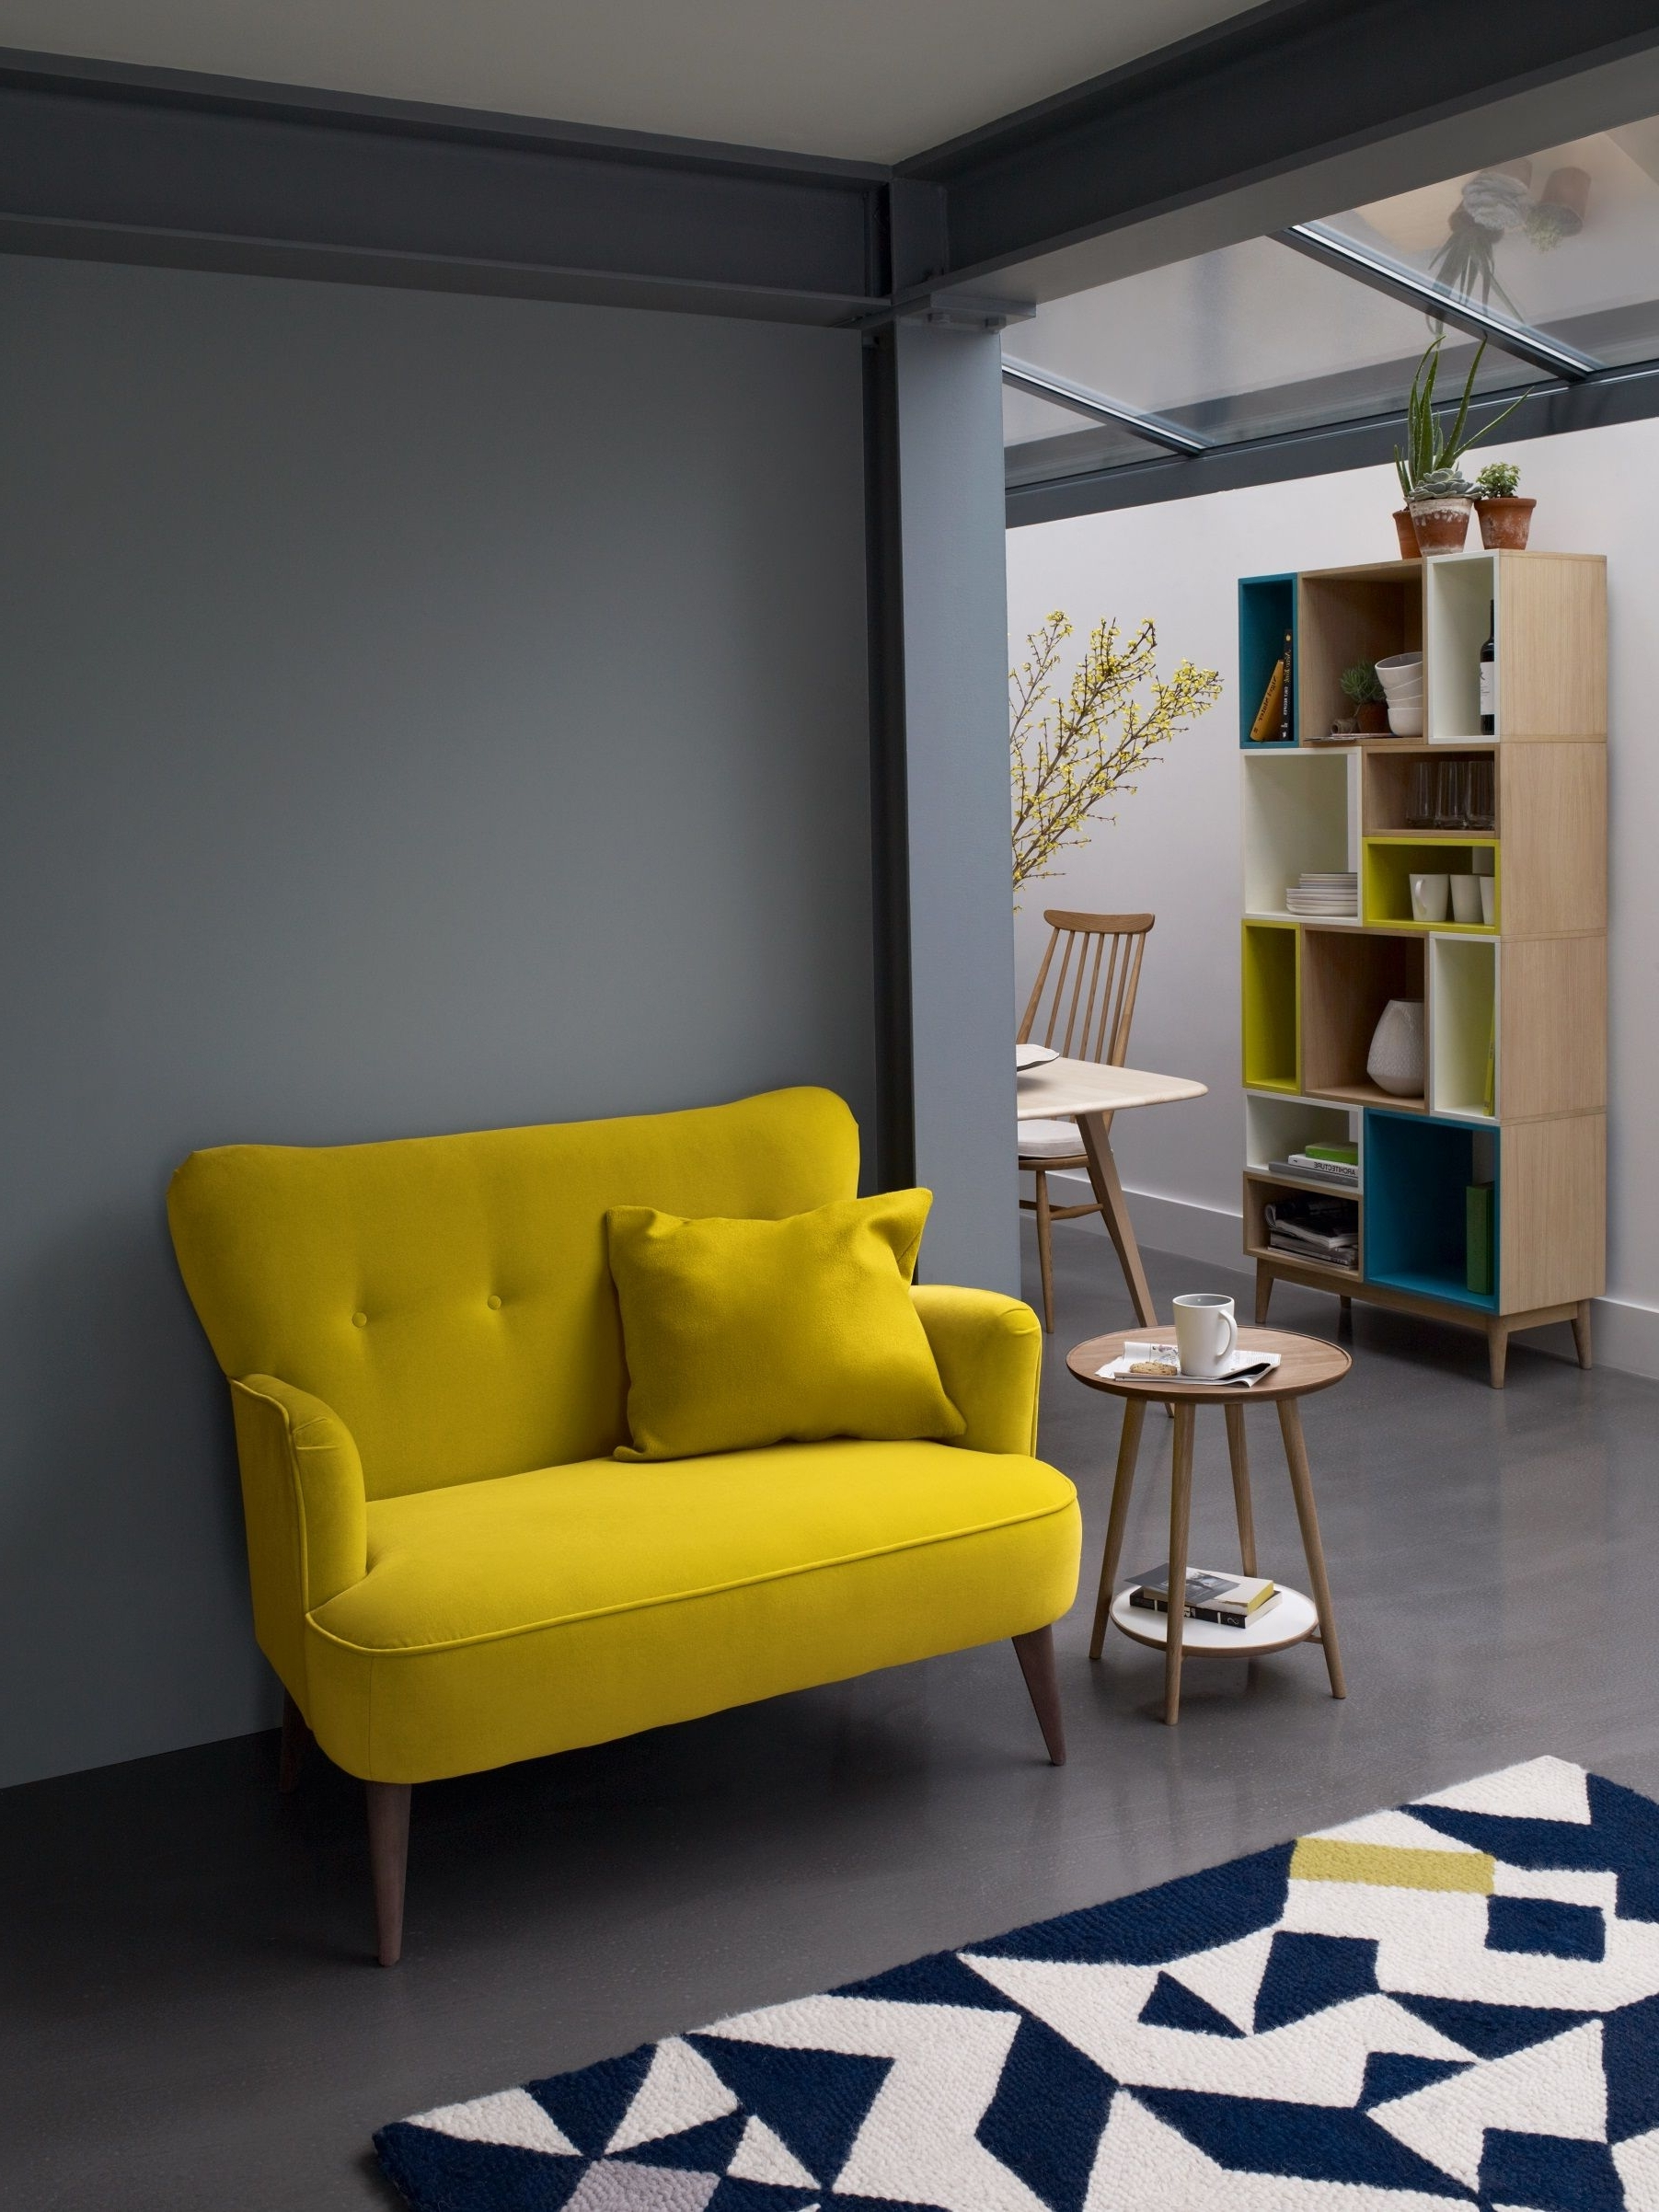 Decor Regarding Yellow Sofa Chairs (Gallery 2 of 20)